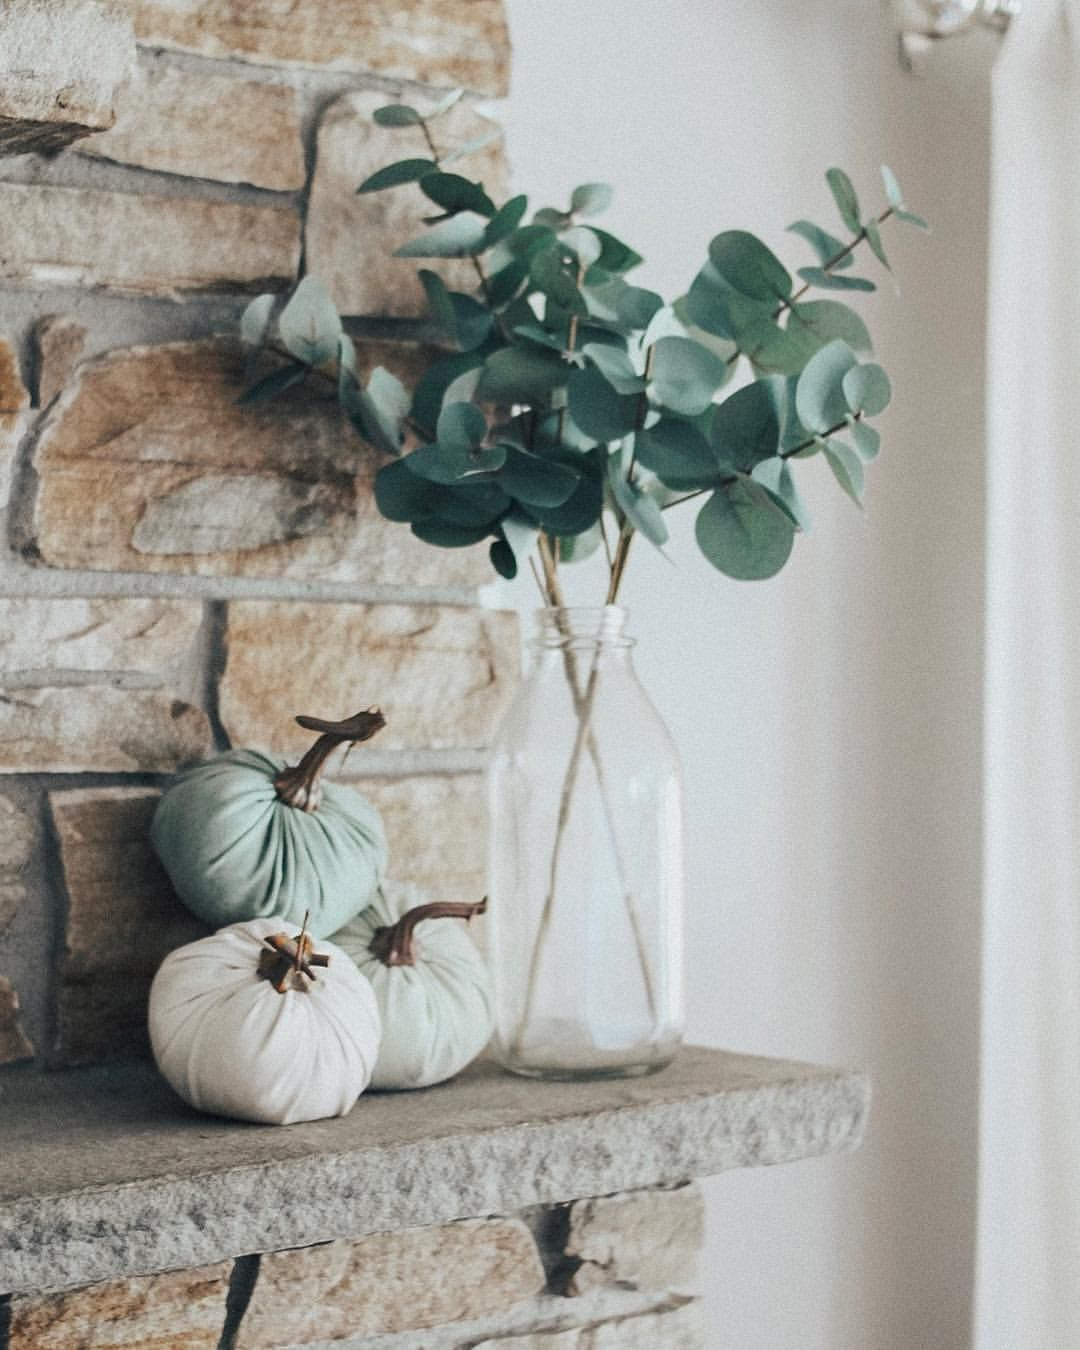 "kelsea | life with jordans on Instagram: ""Today has been the perfect fall day. It was feeling chilly in the house so I dug out some of our fall decor! Decorating for fall has to be…"" #fallmantledecor"